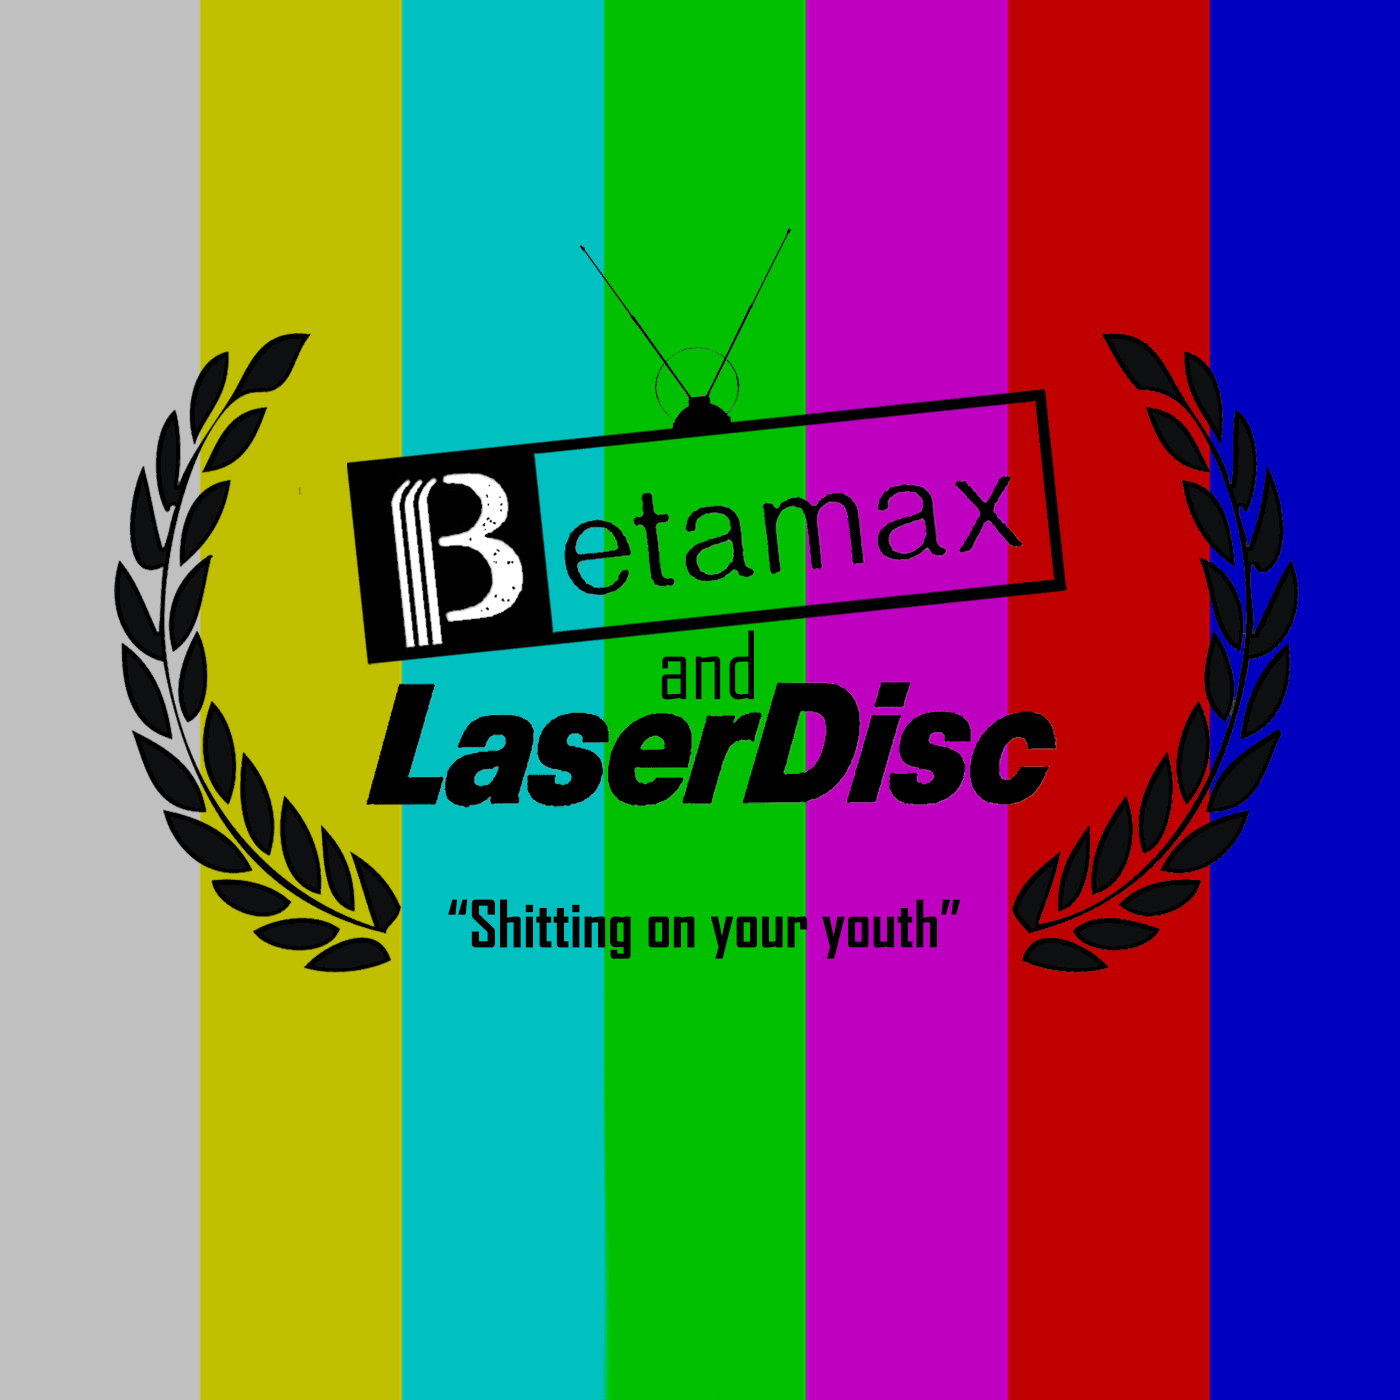 Betamax & Laserdisc #9 | The Television & Film Podcast from The Unheard Nerd